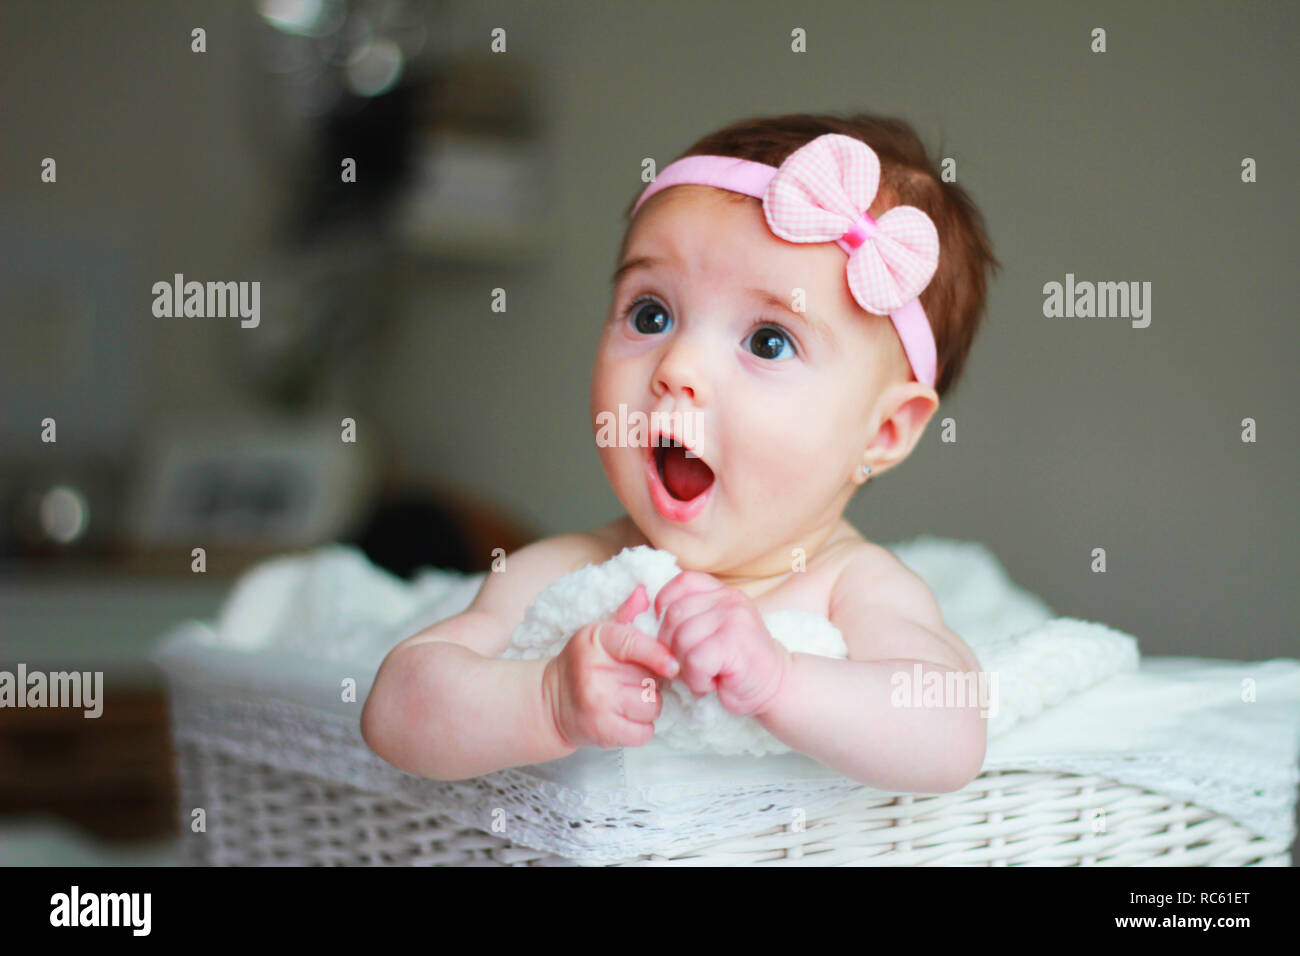 cute baby girl with